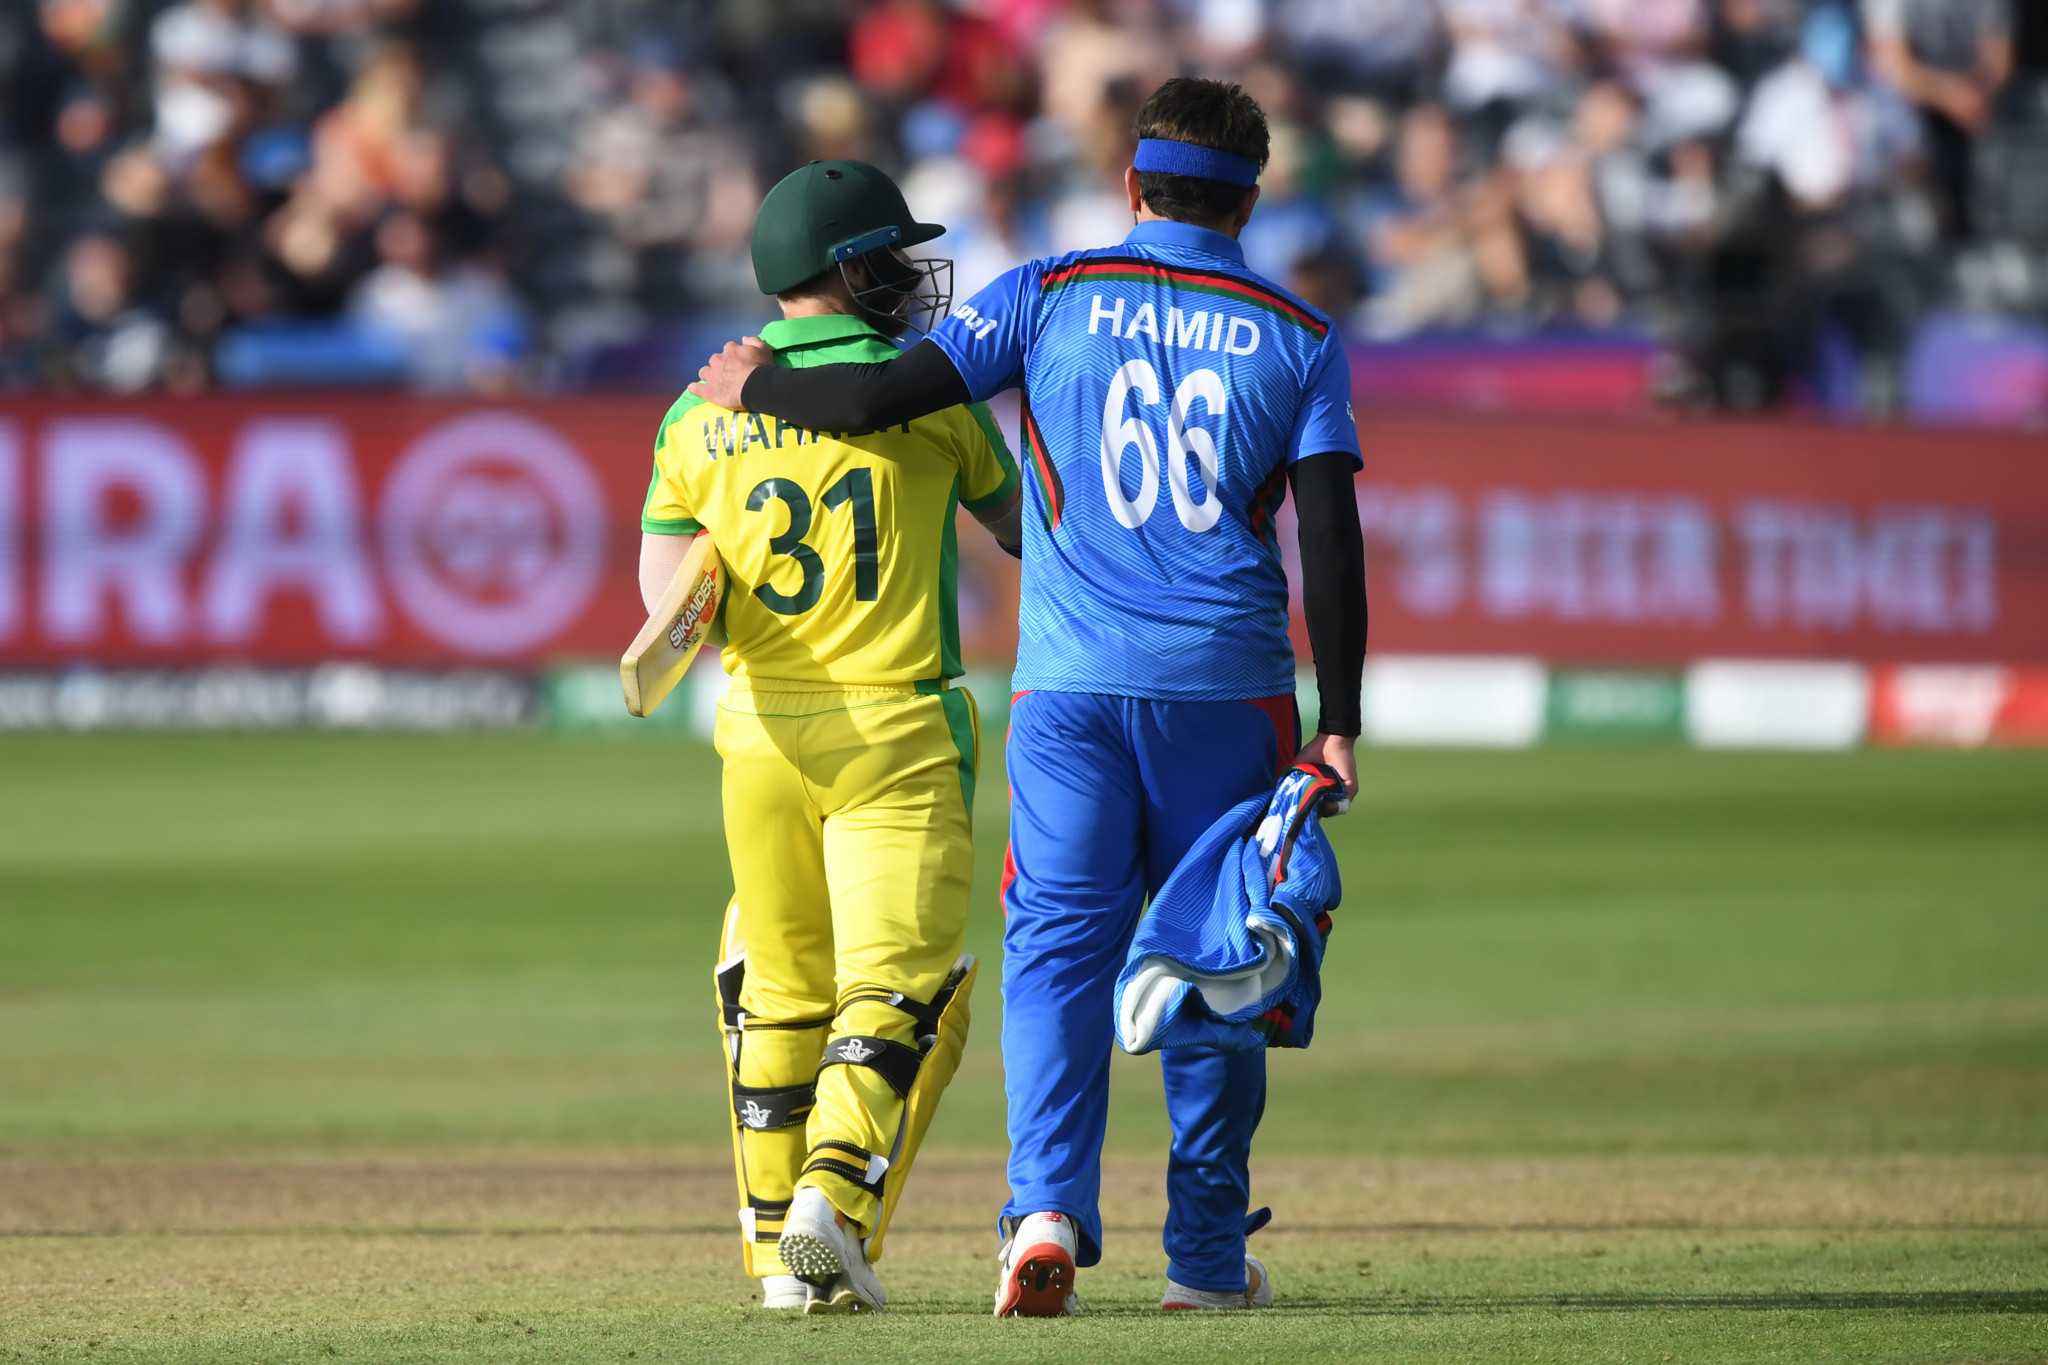 Australia to postpone Test match against Afghanistan in protest for women's sport